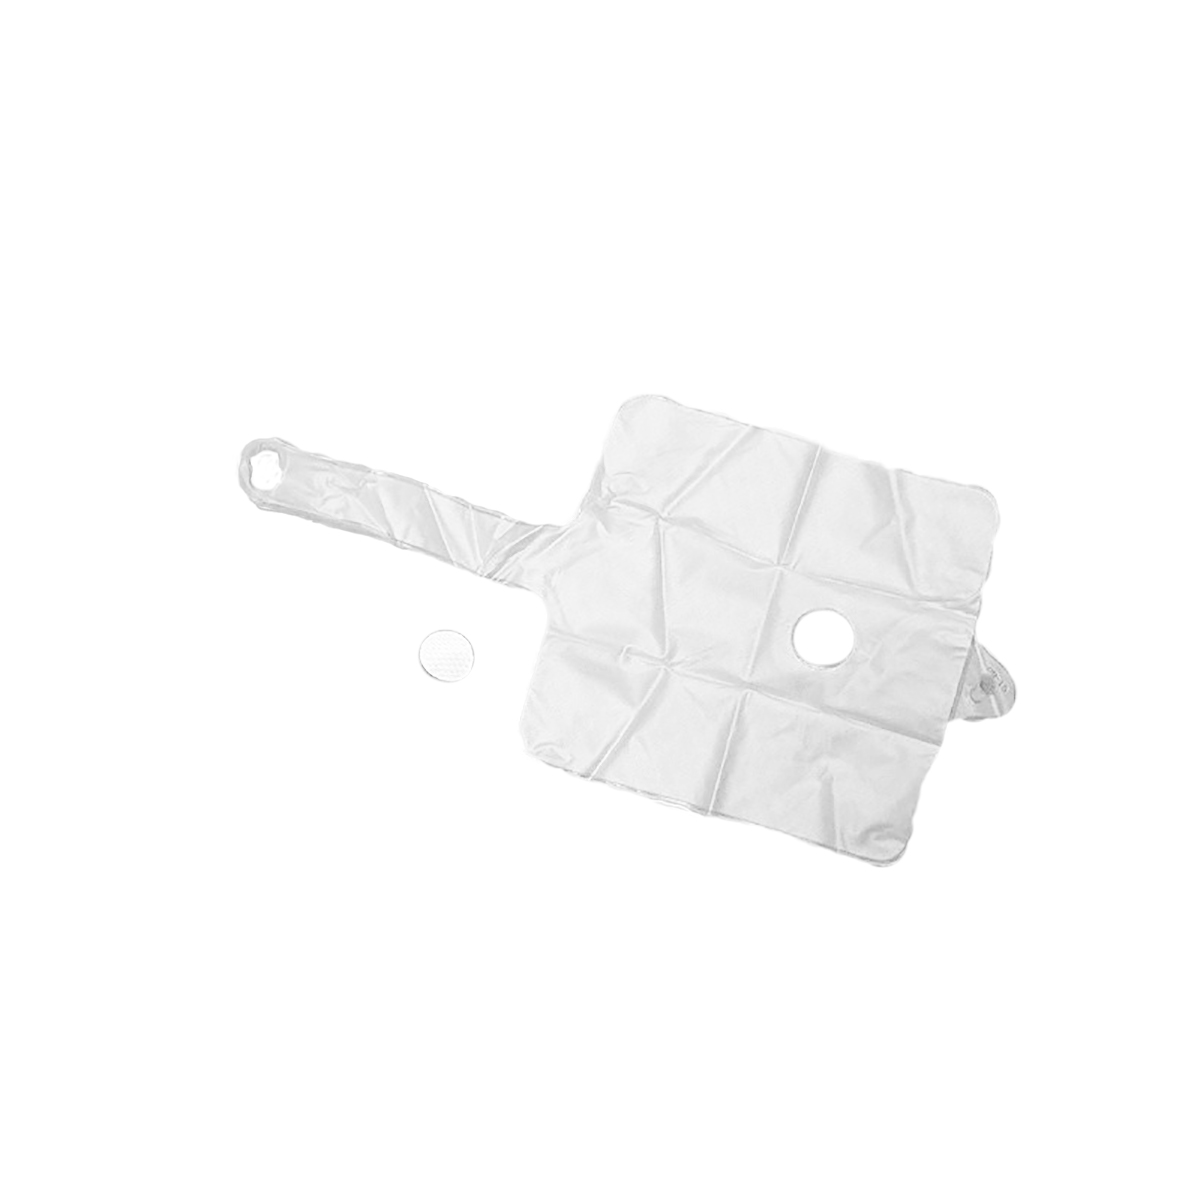 Pack of 100 Filters and Lungs for Laerdal Little Junior™ and Resusci Junior